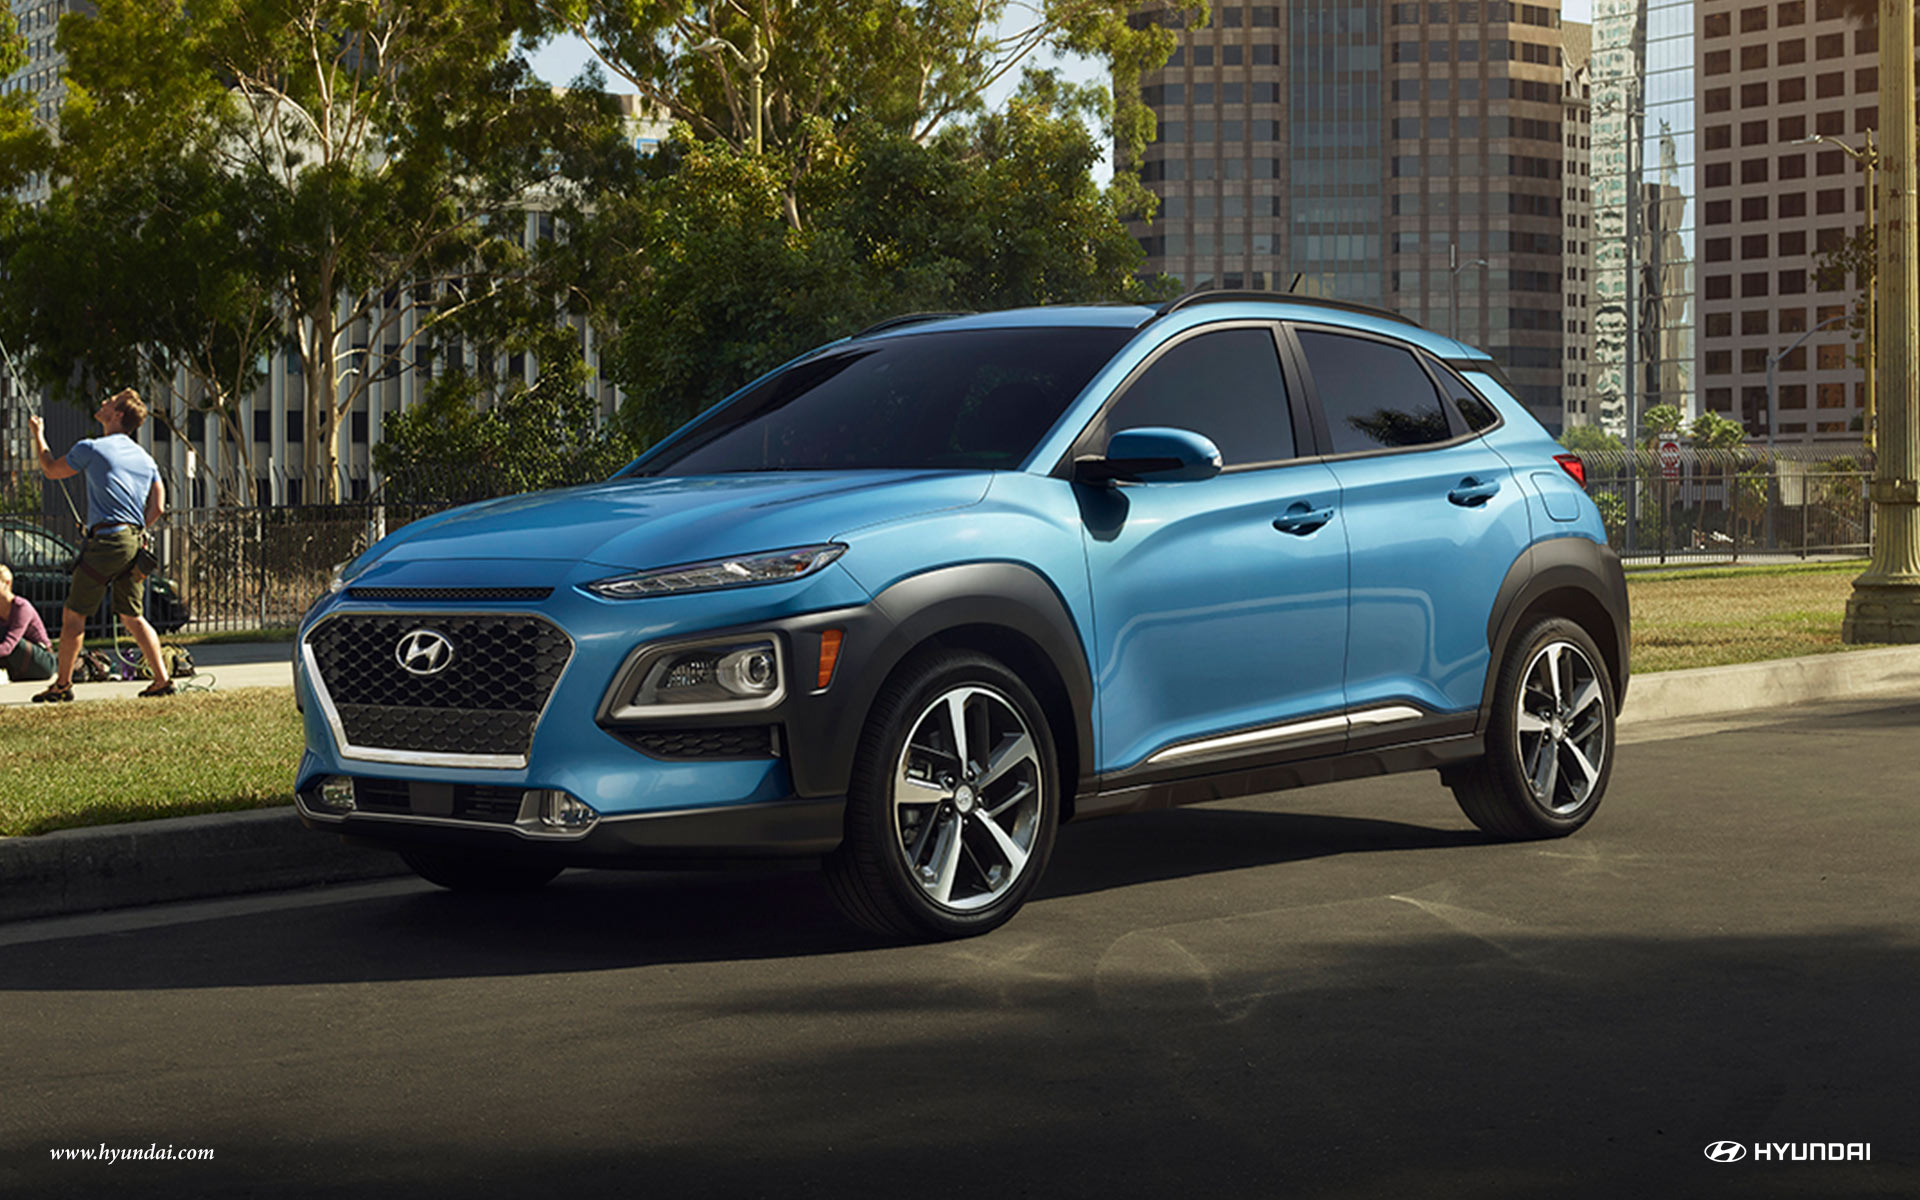 Colorado Springs Area - 2018 Hyundai Kona's Exterior